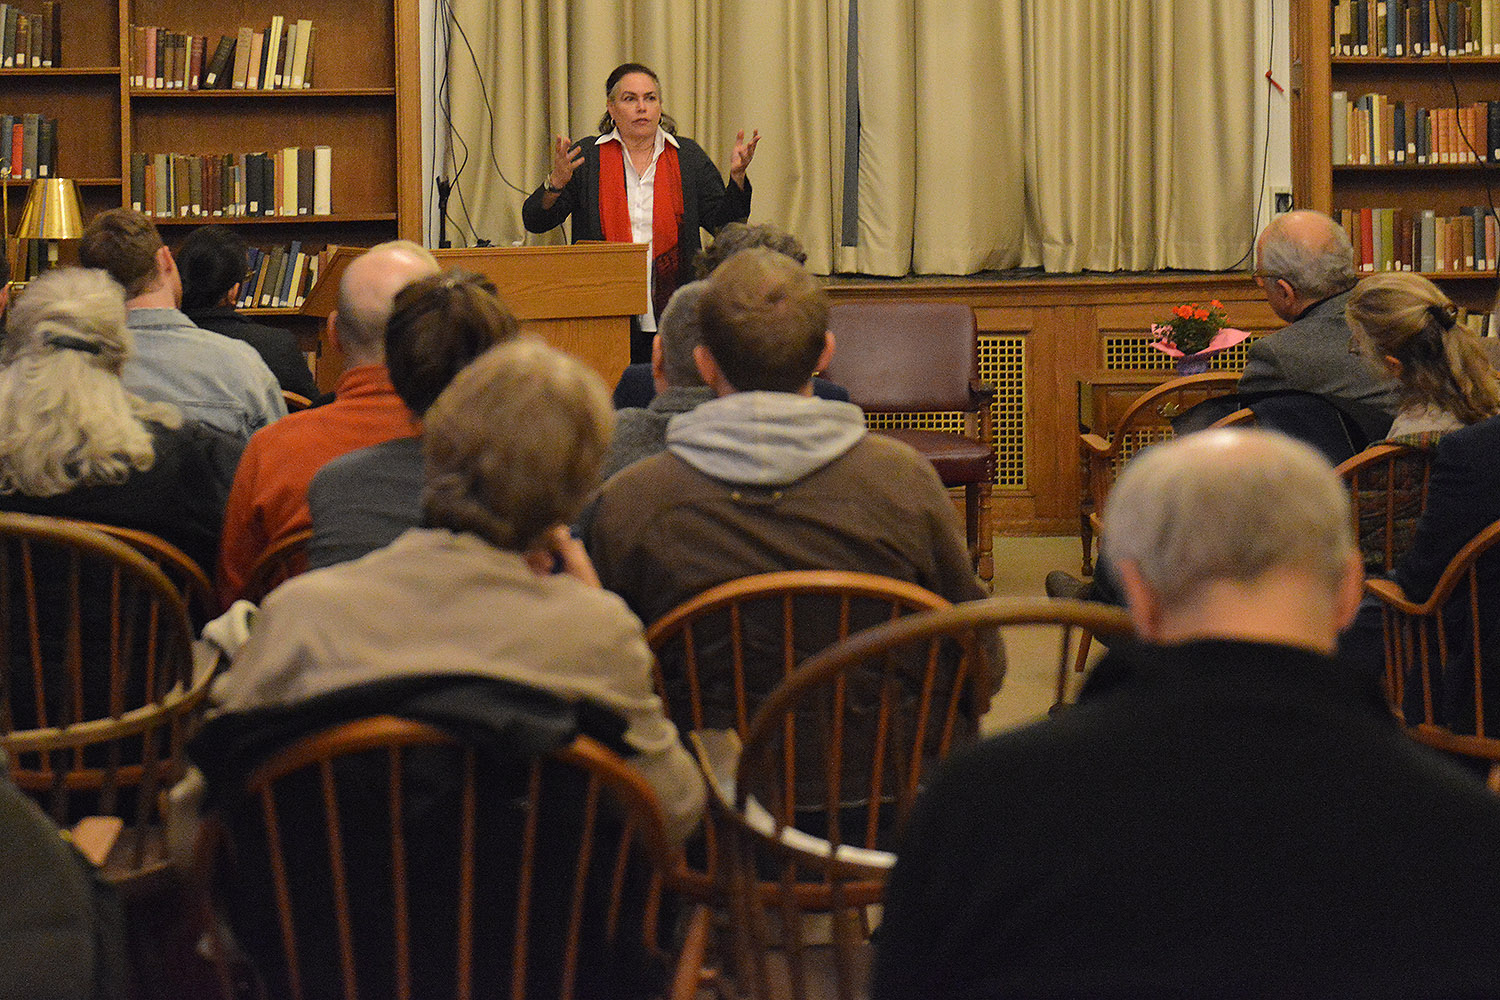 On April 19, New York Times best-selling author Amy Bloom, the Shapiro-Silverberg Professor of Creative Writing, presented a reading from her new novel, White Houses, inside the Smith Reading Room at Olin Library. Bloom also is professor of the practice in creative writing and English.